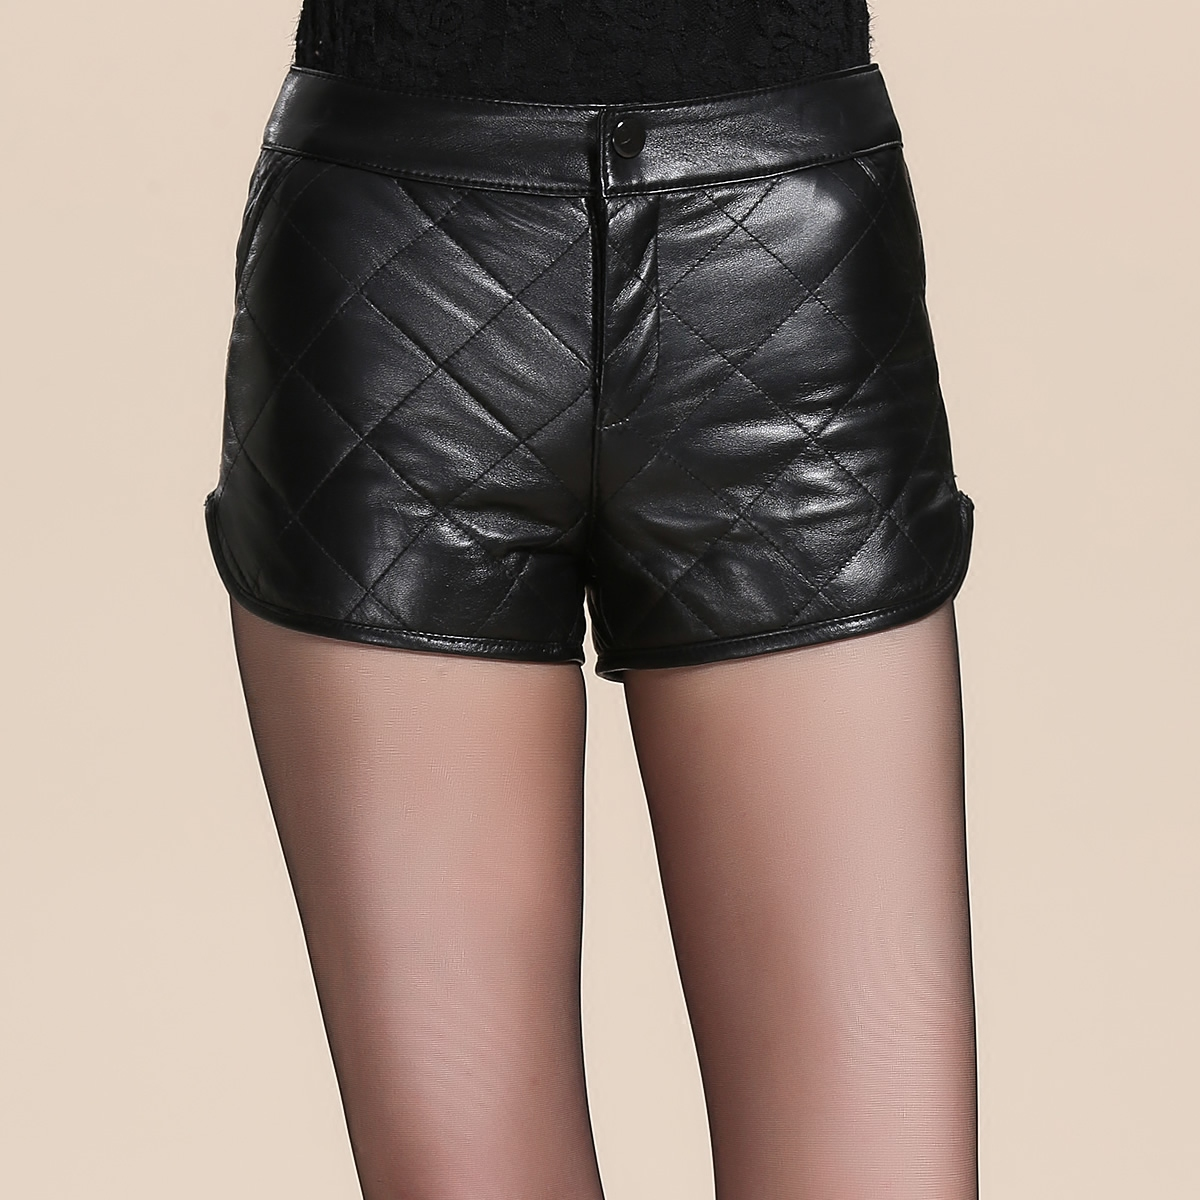 Dingyangyang 2019 autumn winter new Haining sheep leather real down leather shorts leather pants slim fit thickened hot pants